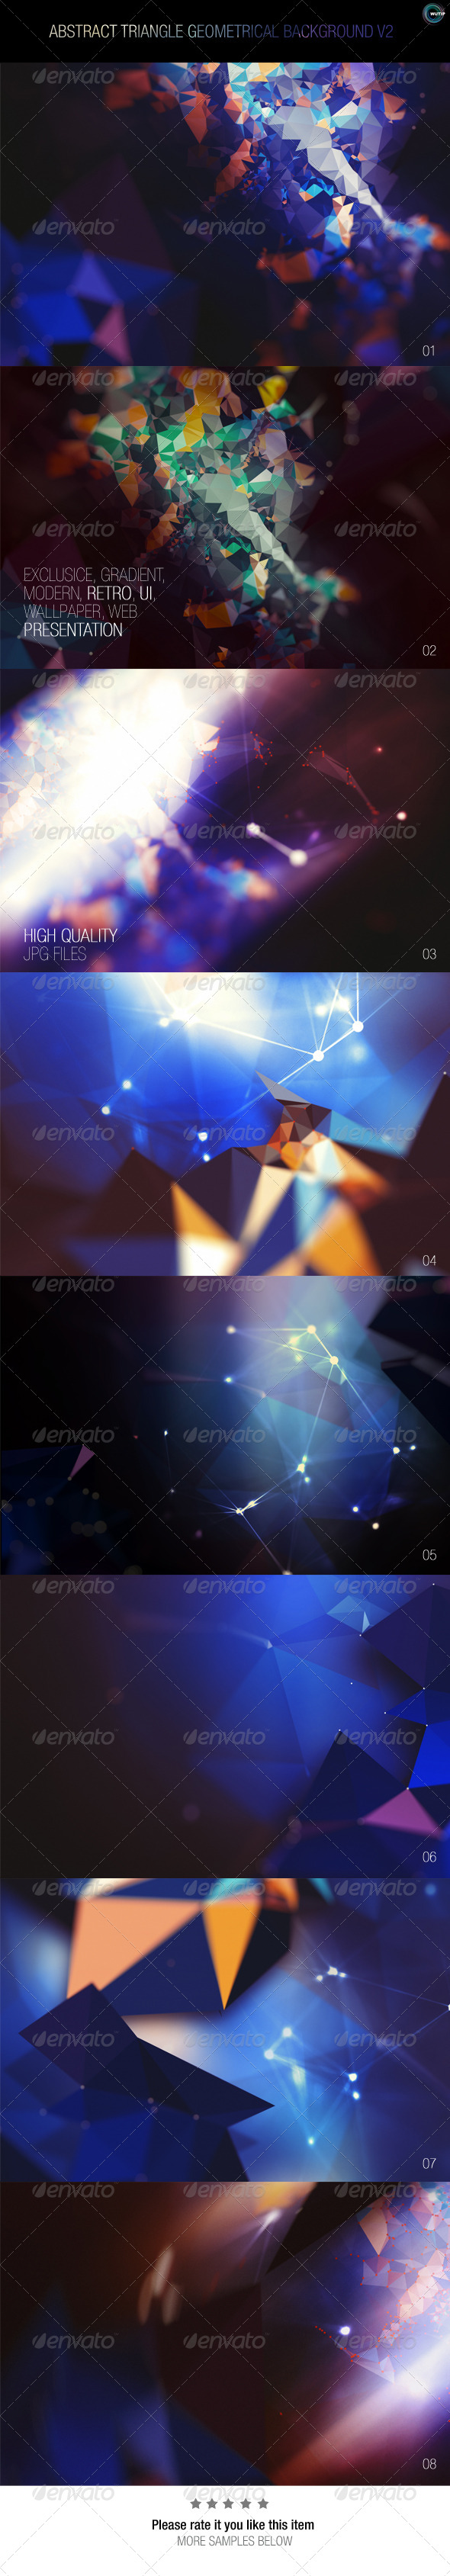 Abstract Triangle Geometrical Background V2